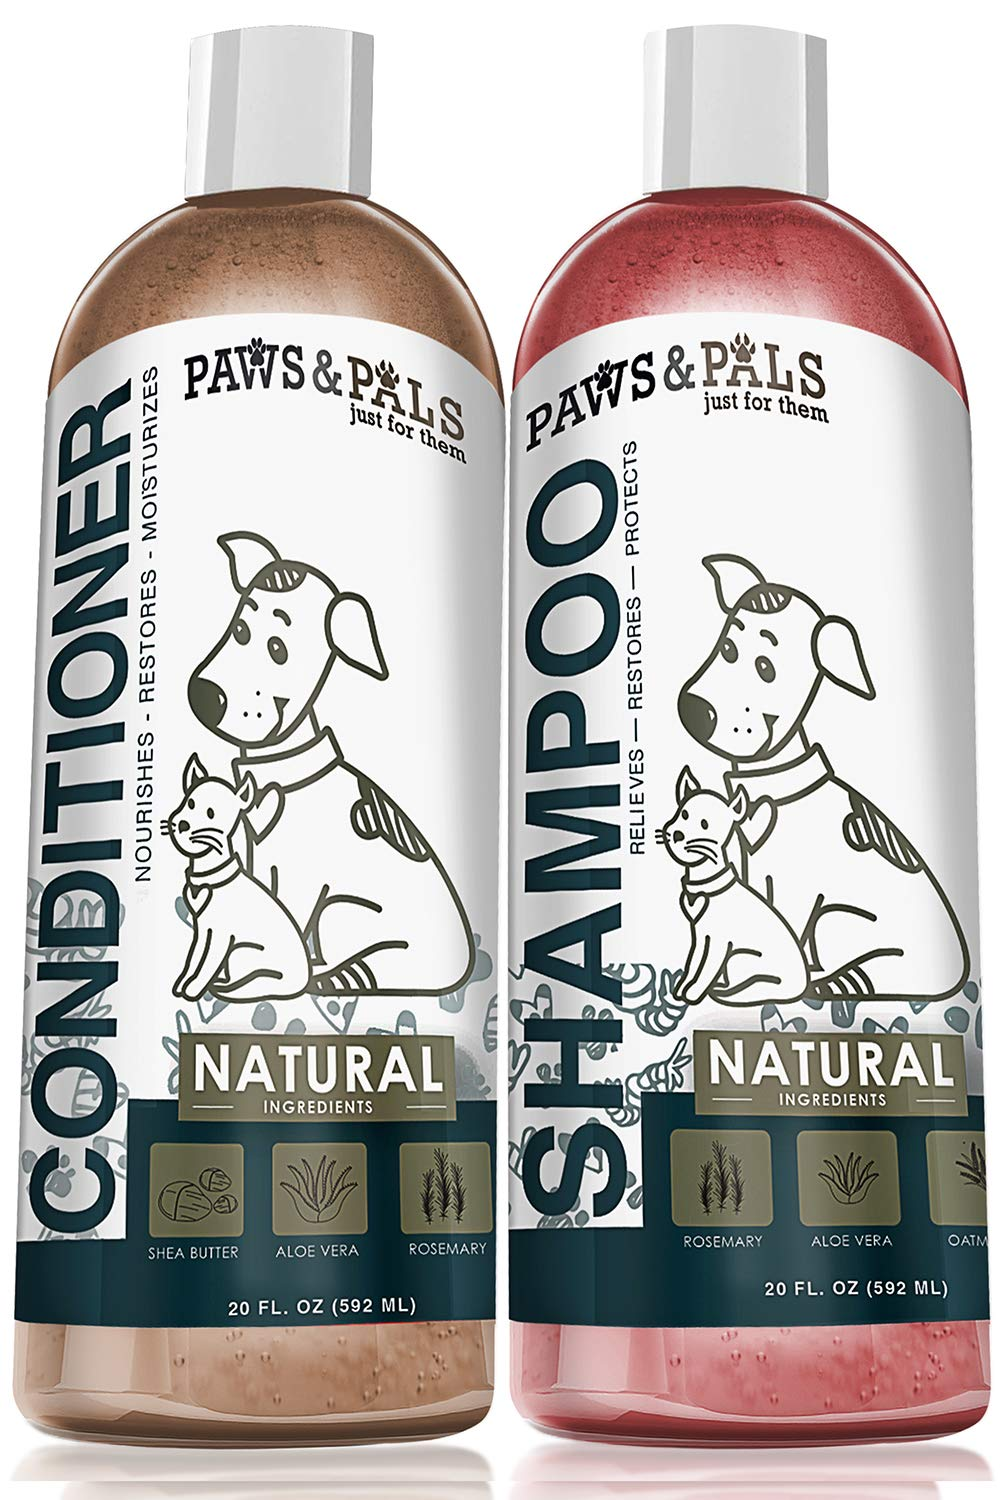 Natural Oatmeal Dog-Shampoo and Conditioner Combo - 20oz Medicated Clinical Vet Formula Wash for All Pets Puppy & Cats - Made with Aloe Vera for Relieving Dry Itchy Skin by Paws & Pals